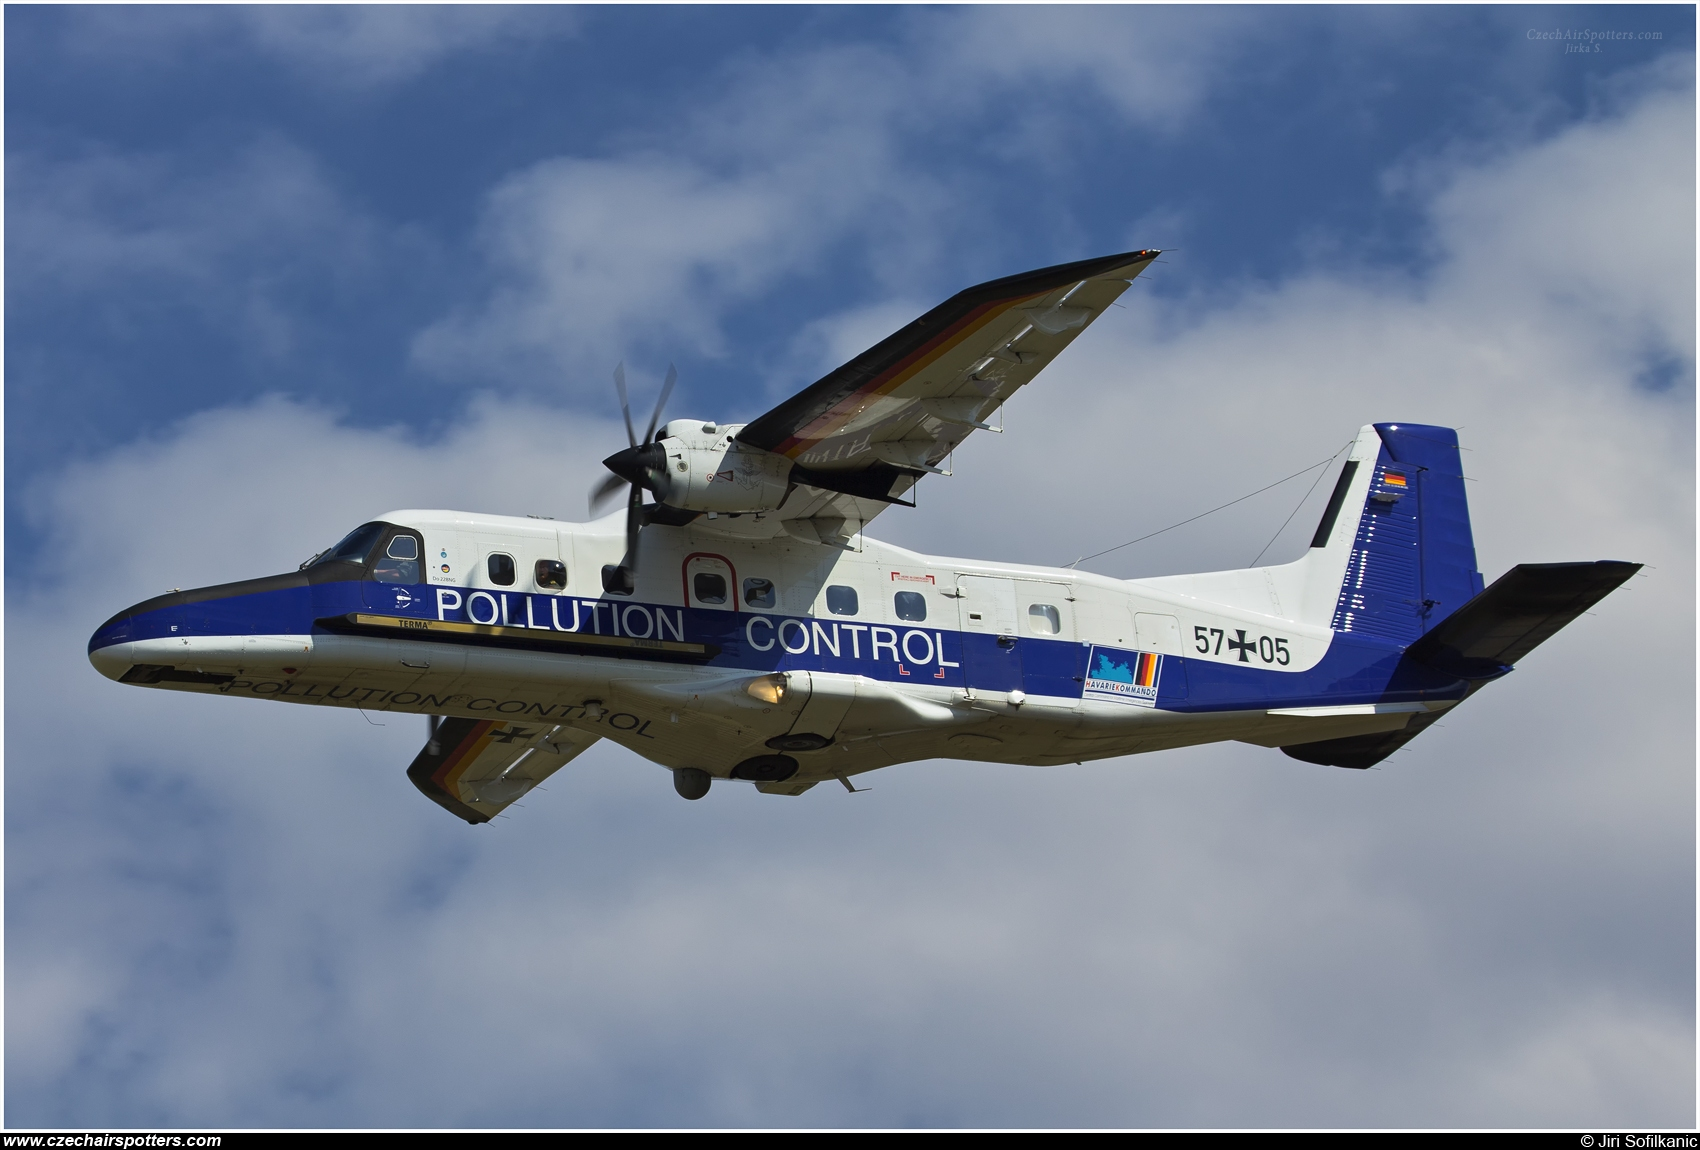 Germany - Marine – Dornier Do-228NG (RUAG) 57+05